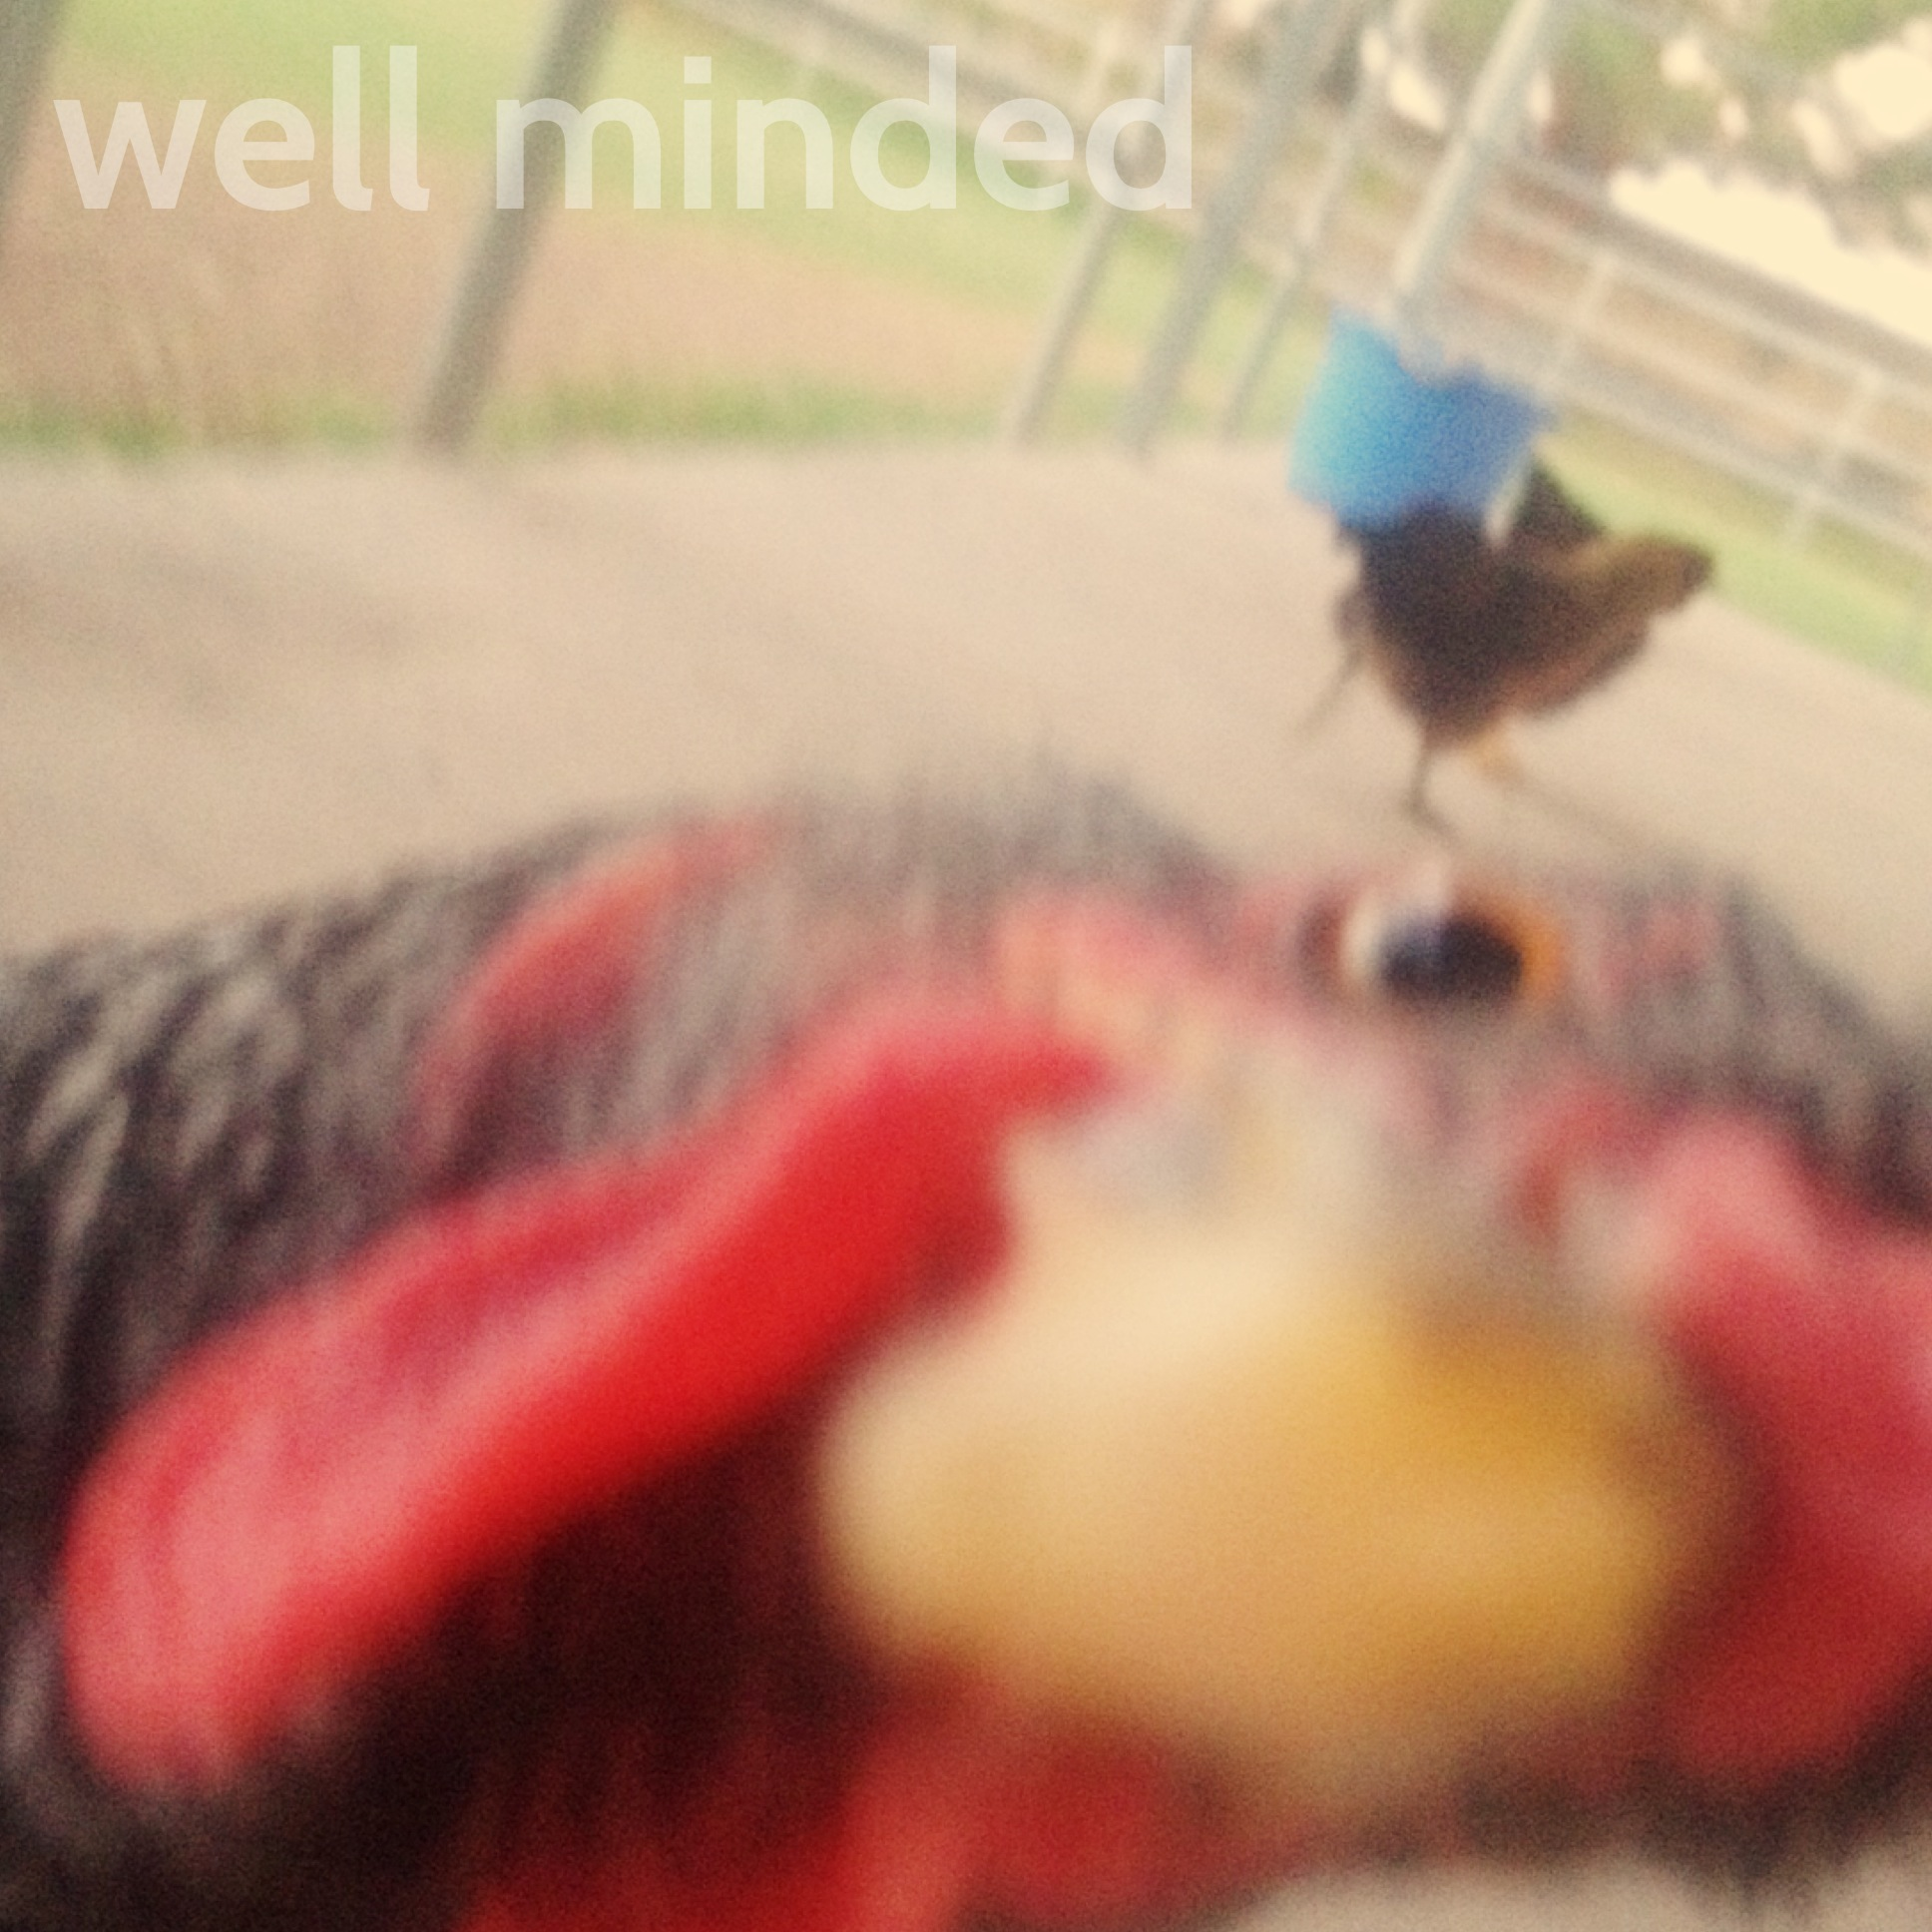 Dusty, one of my clients, is not camera shy. In fact, she was pecking my phone as I attempted to photograph her. Silly!